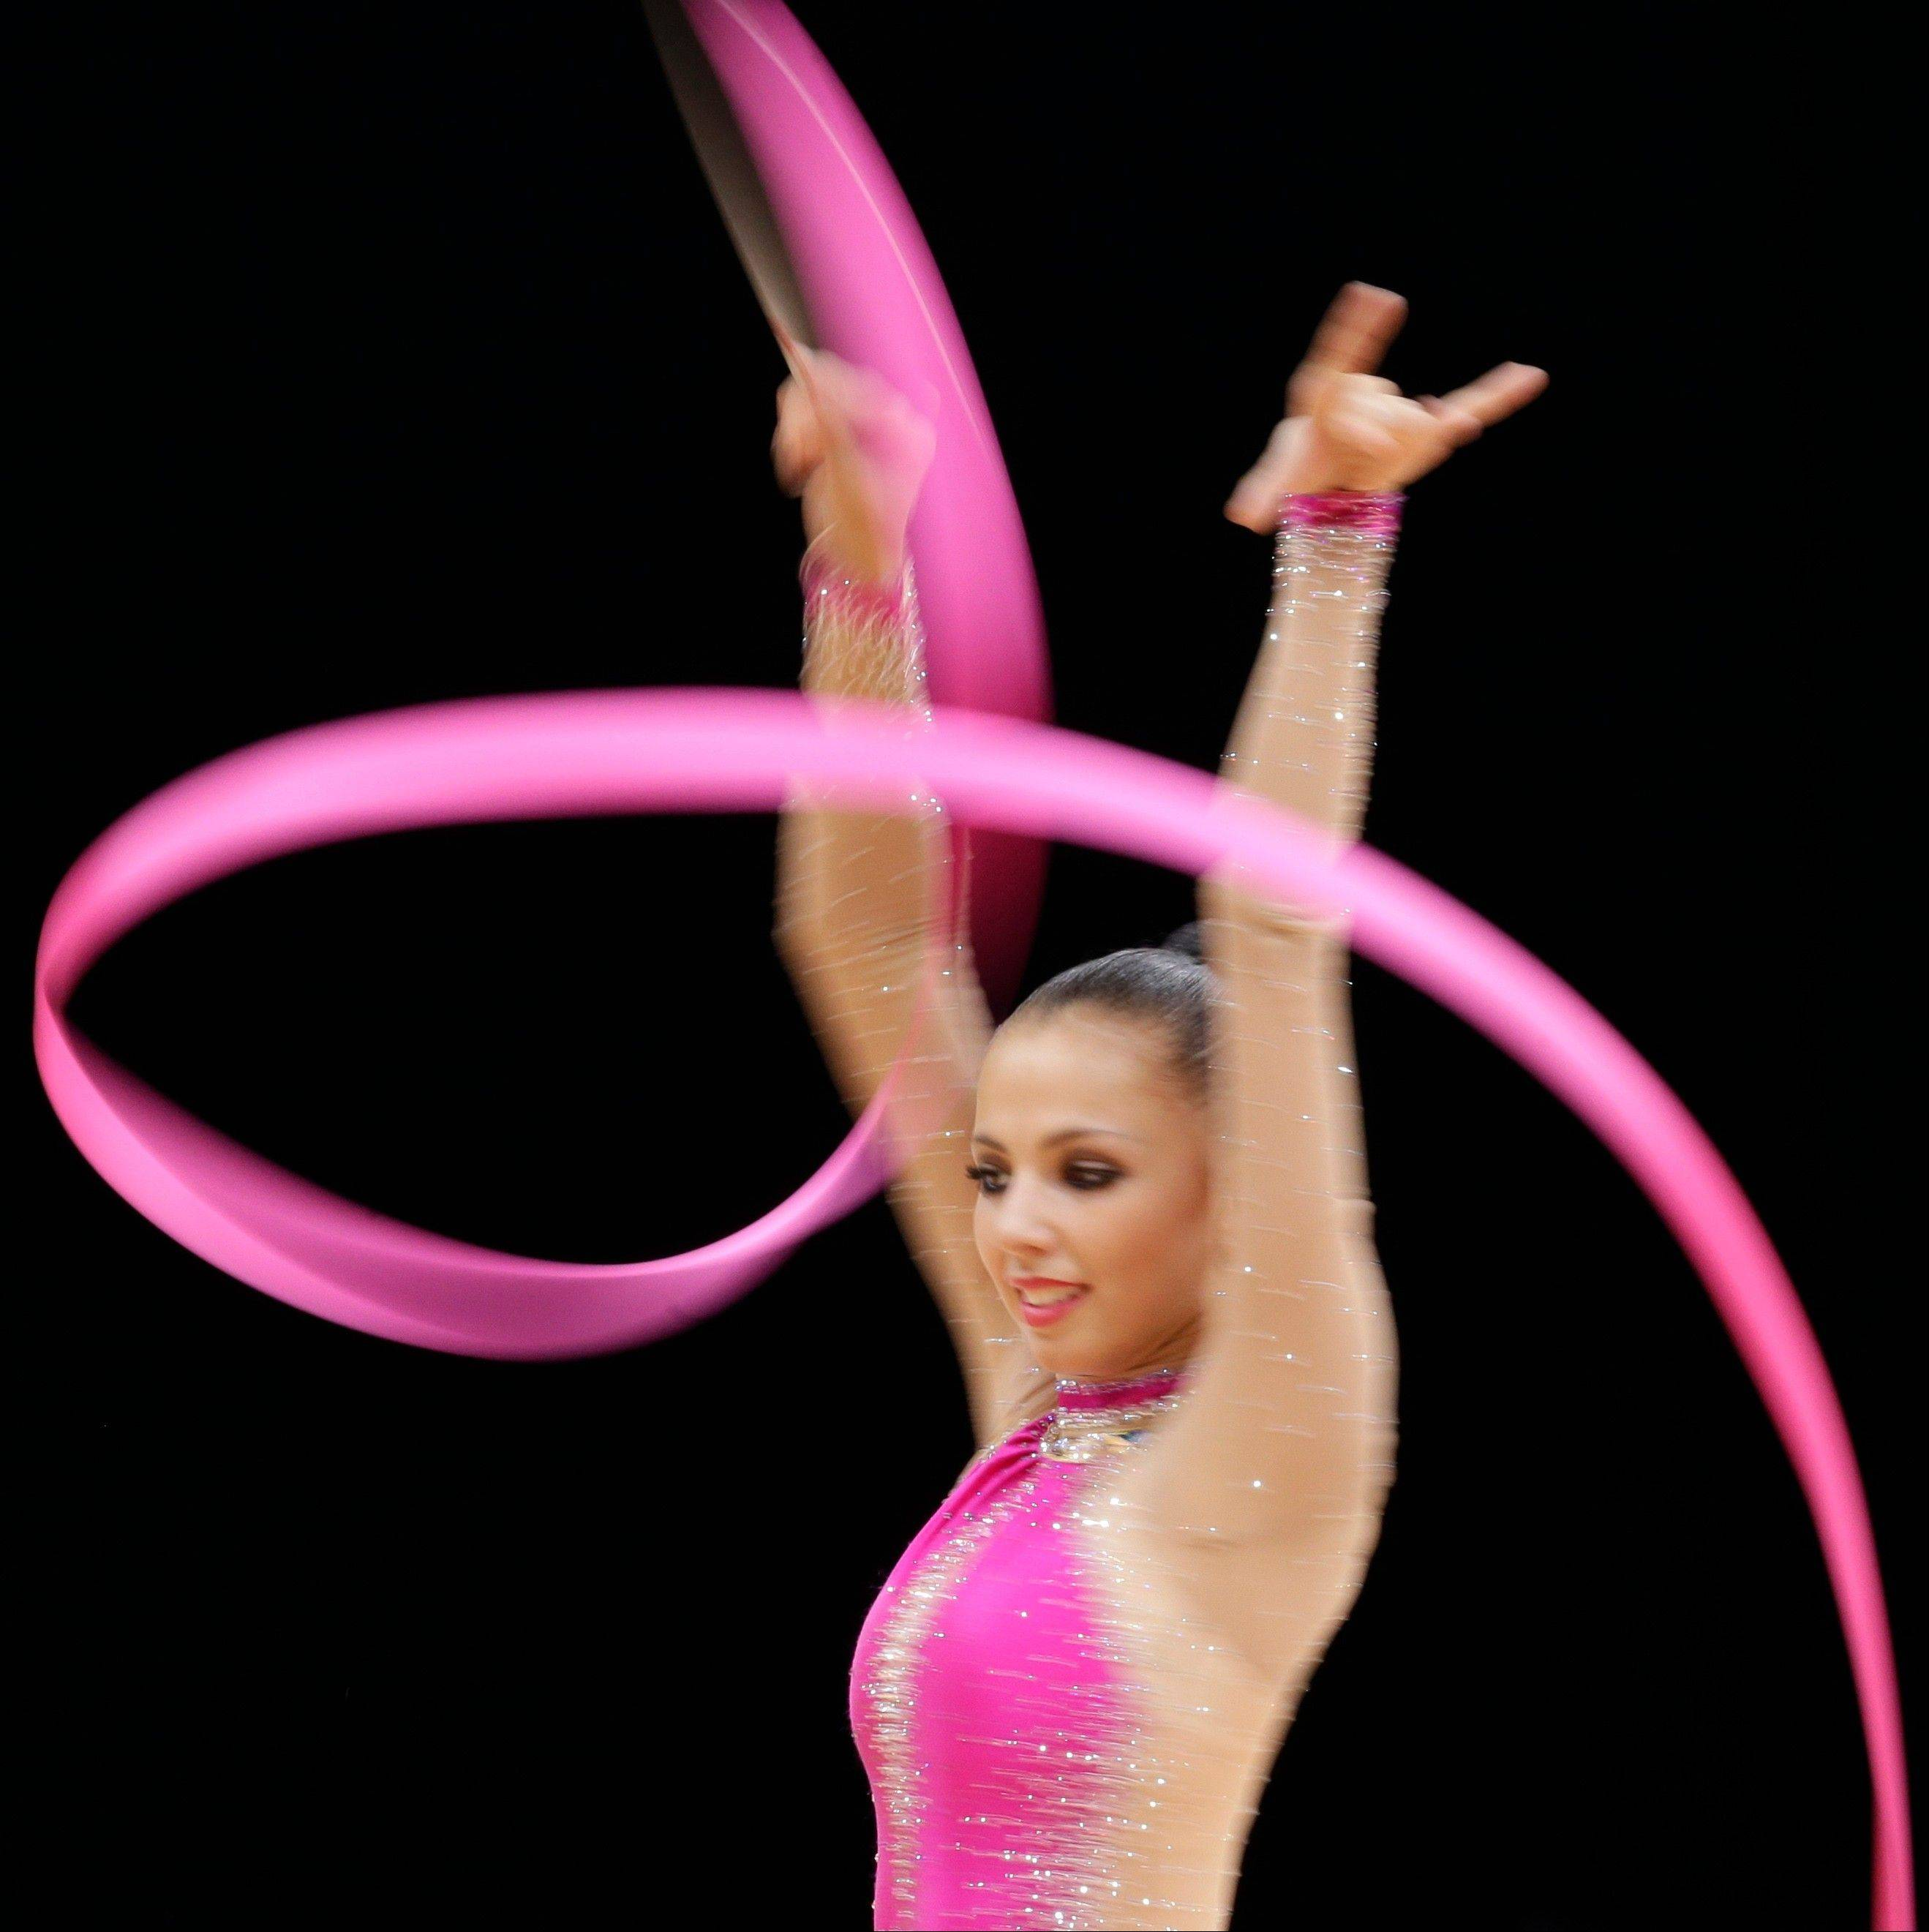 Russia's Daria Dmitrieva performs during the rhythmic gymnastics individual all-around qualifications at the 2012 Summer Olympics, Friday, Aug. 10, 2012, in London.